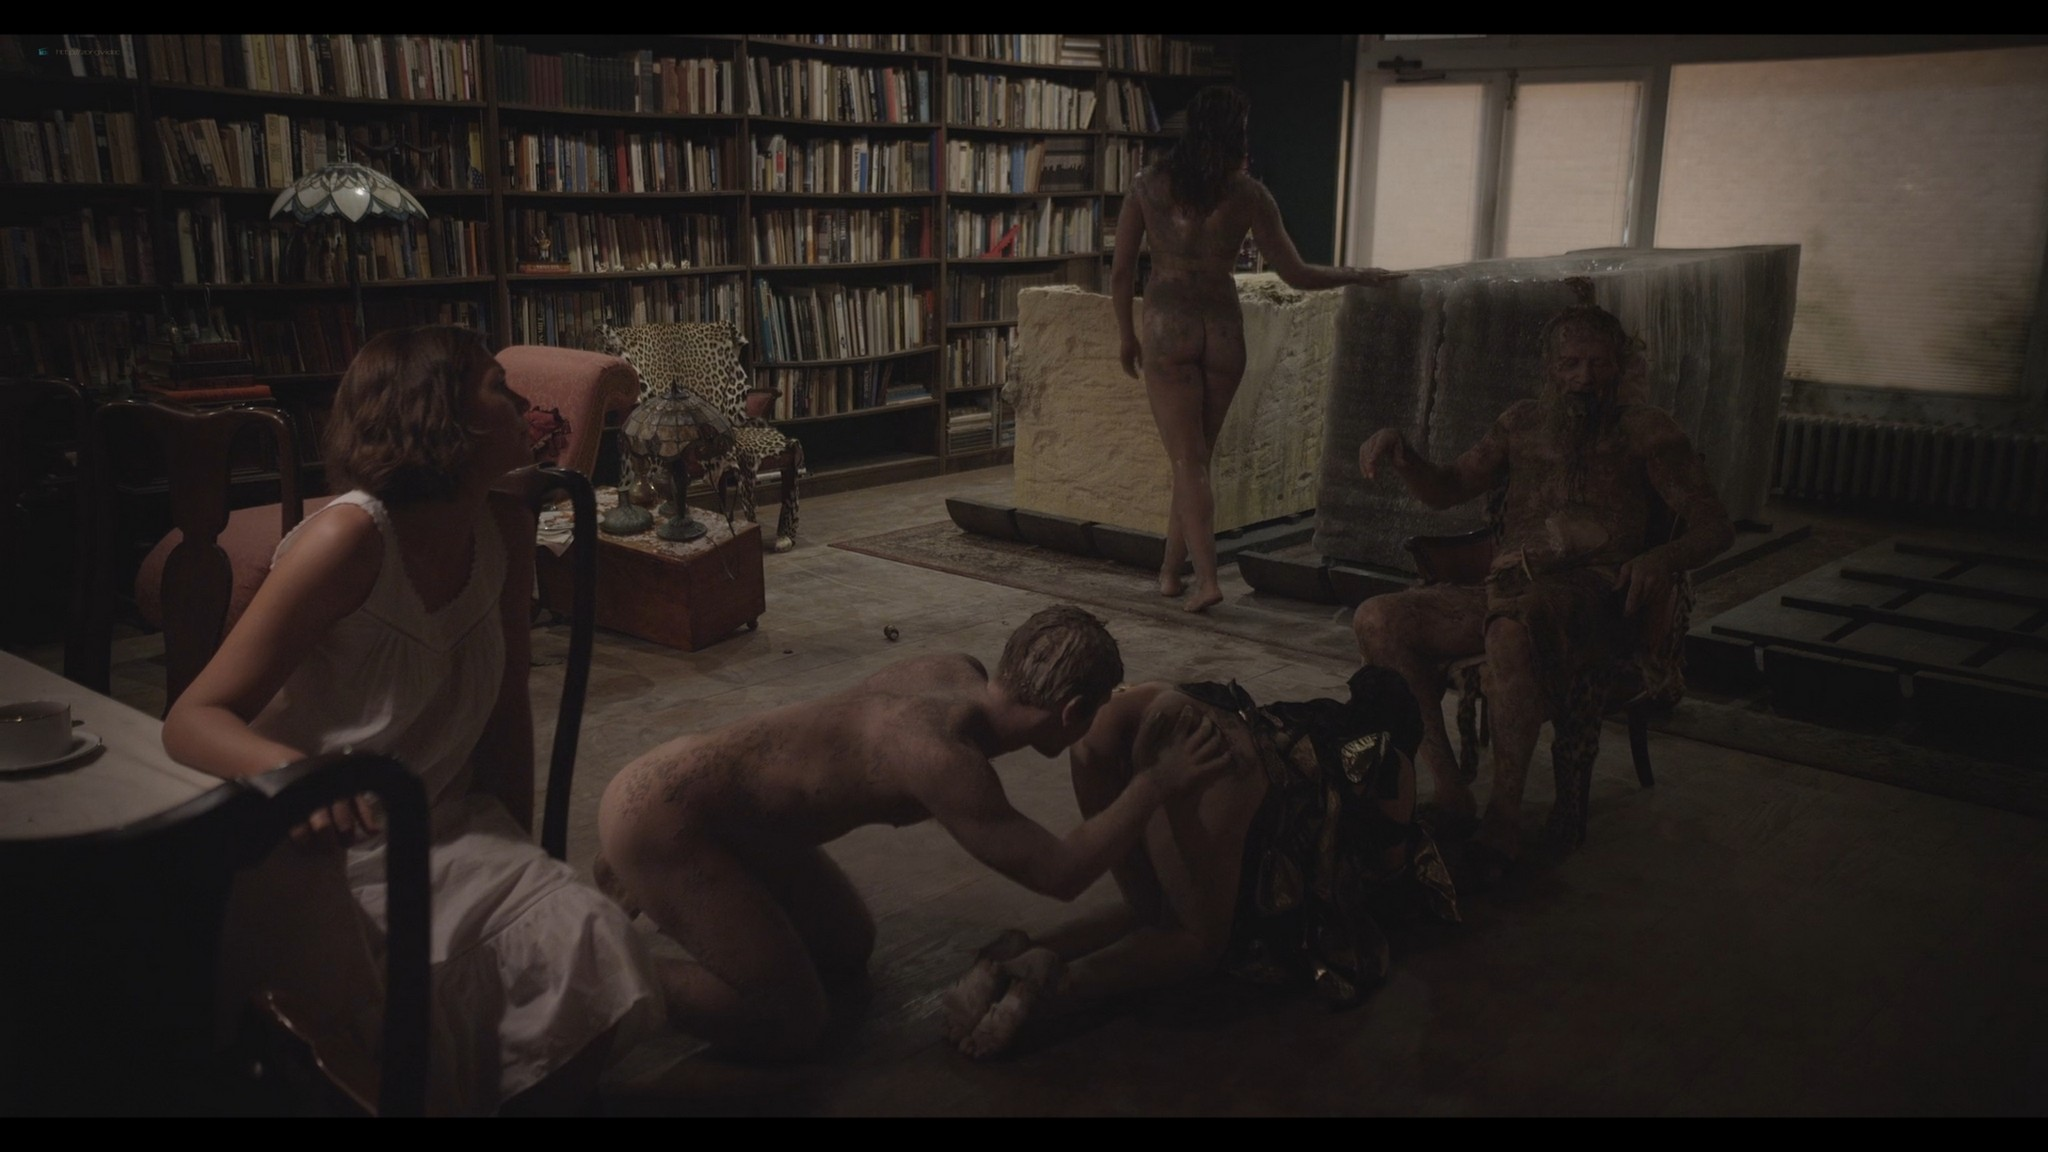 Maggie Gyllenhaal nude lactating Aimee Mullins, Adrianna Nicole, and others nude end explicit - River of Fundament (2014) HD 1080p (7)